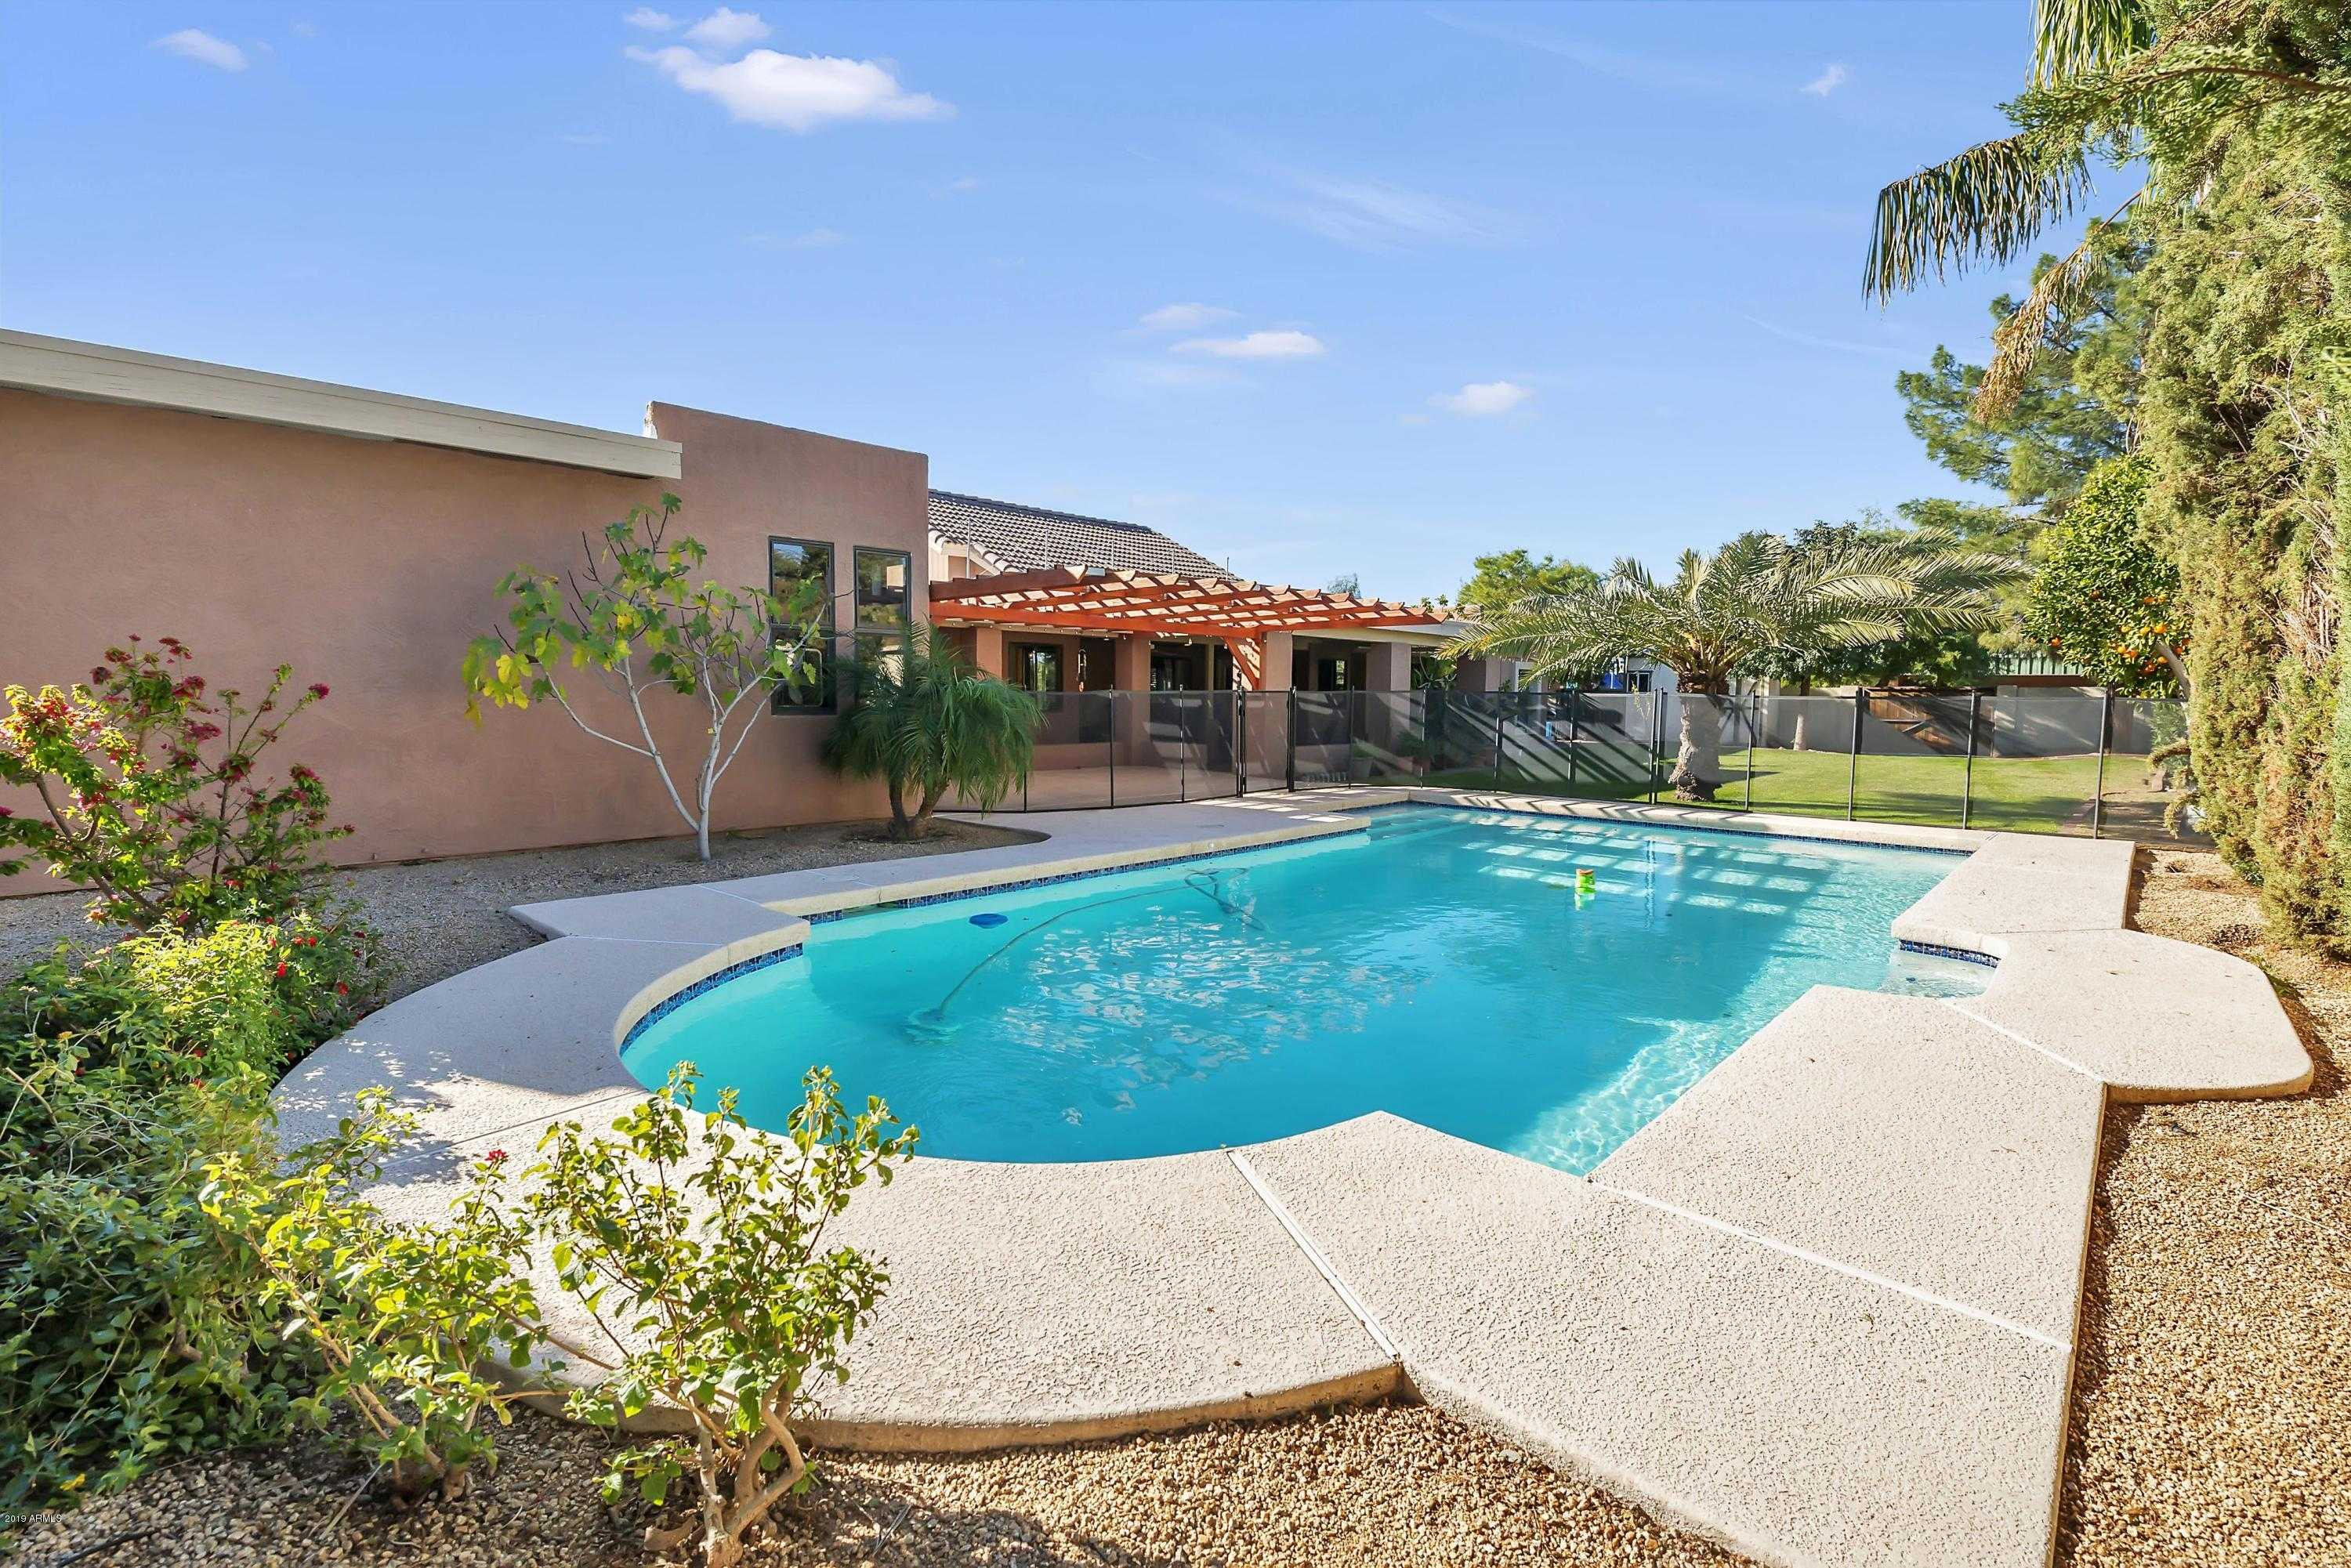 $429,900 - 4Br/3Ba - Home for Sale in Glenmeade Estates Lot 1-32, Tract A, Glendale